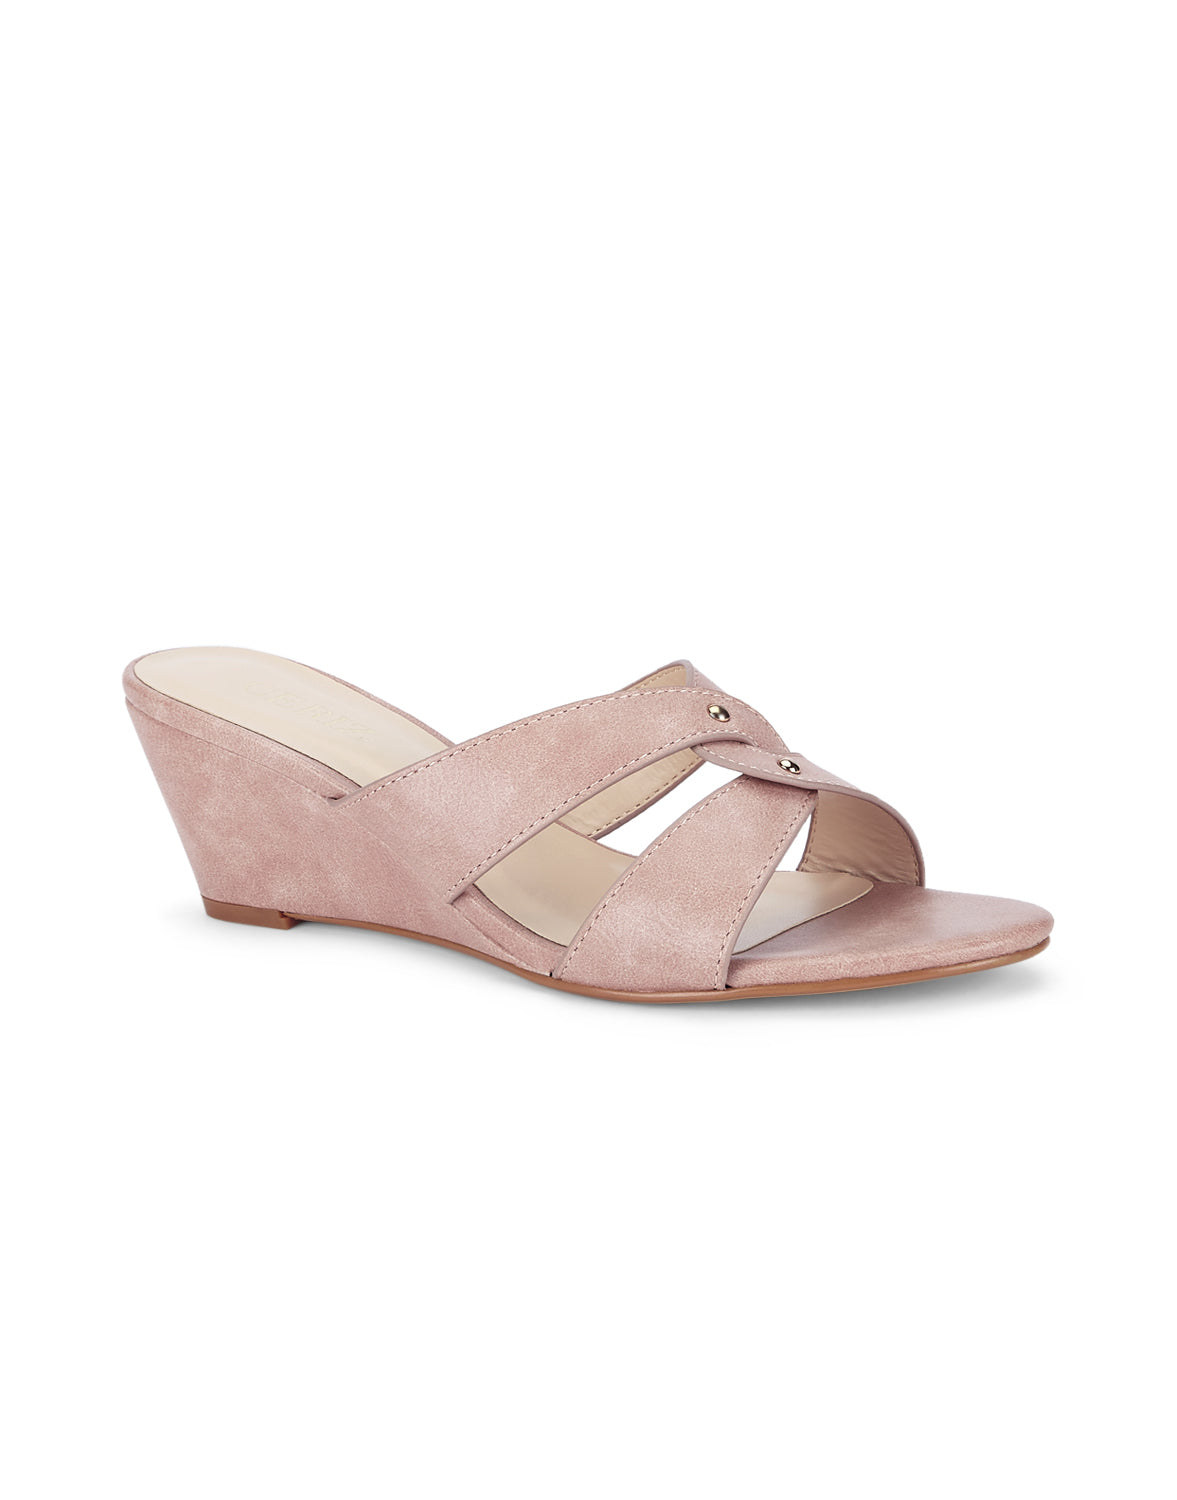 Eloise Muted Light Pink Sandals